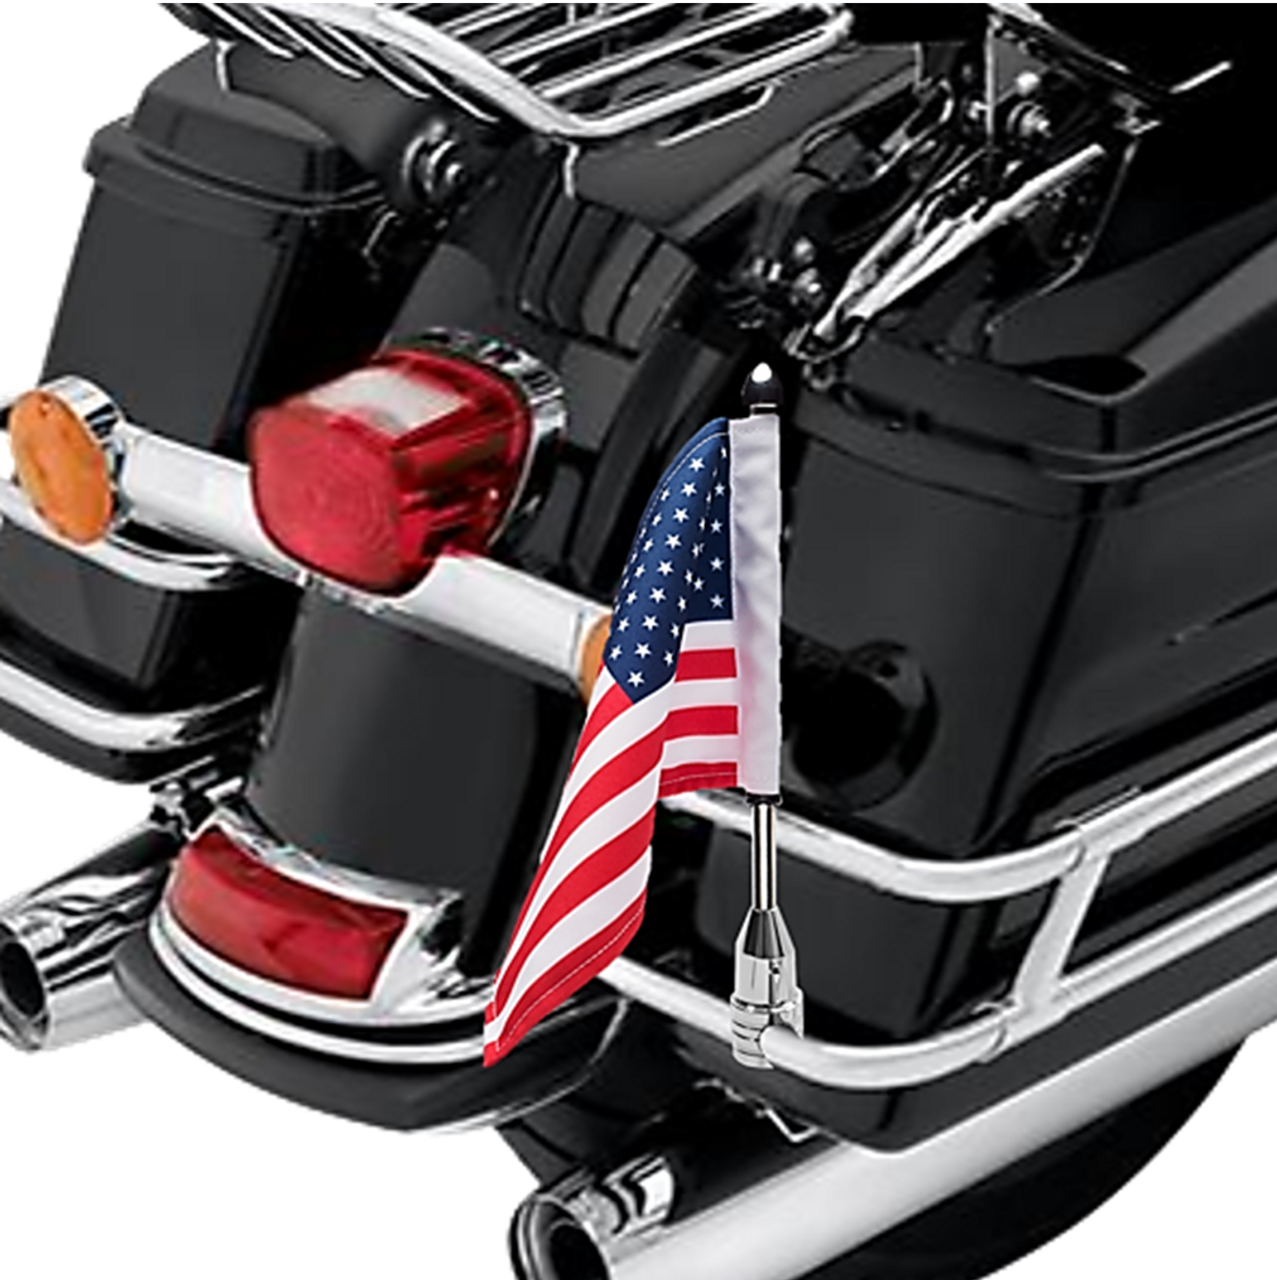 """#RFM-FXD1 with 6""""x9"""" USA highway flag mounted on Harley saddlebag bar (not included)"""